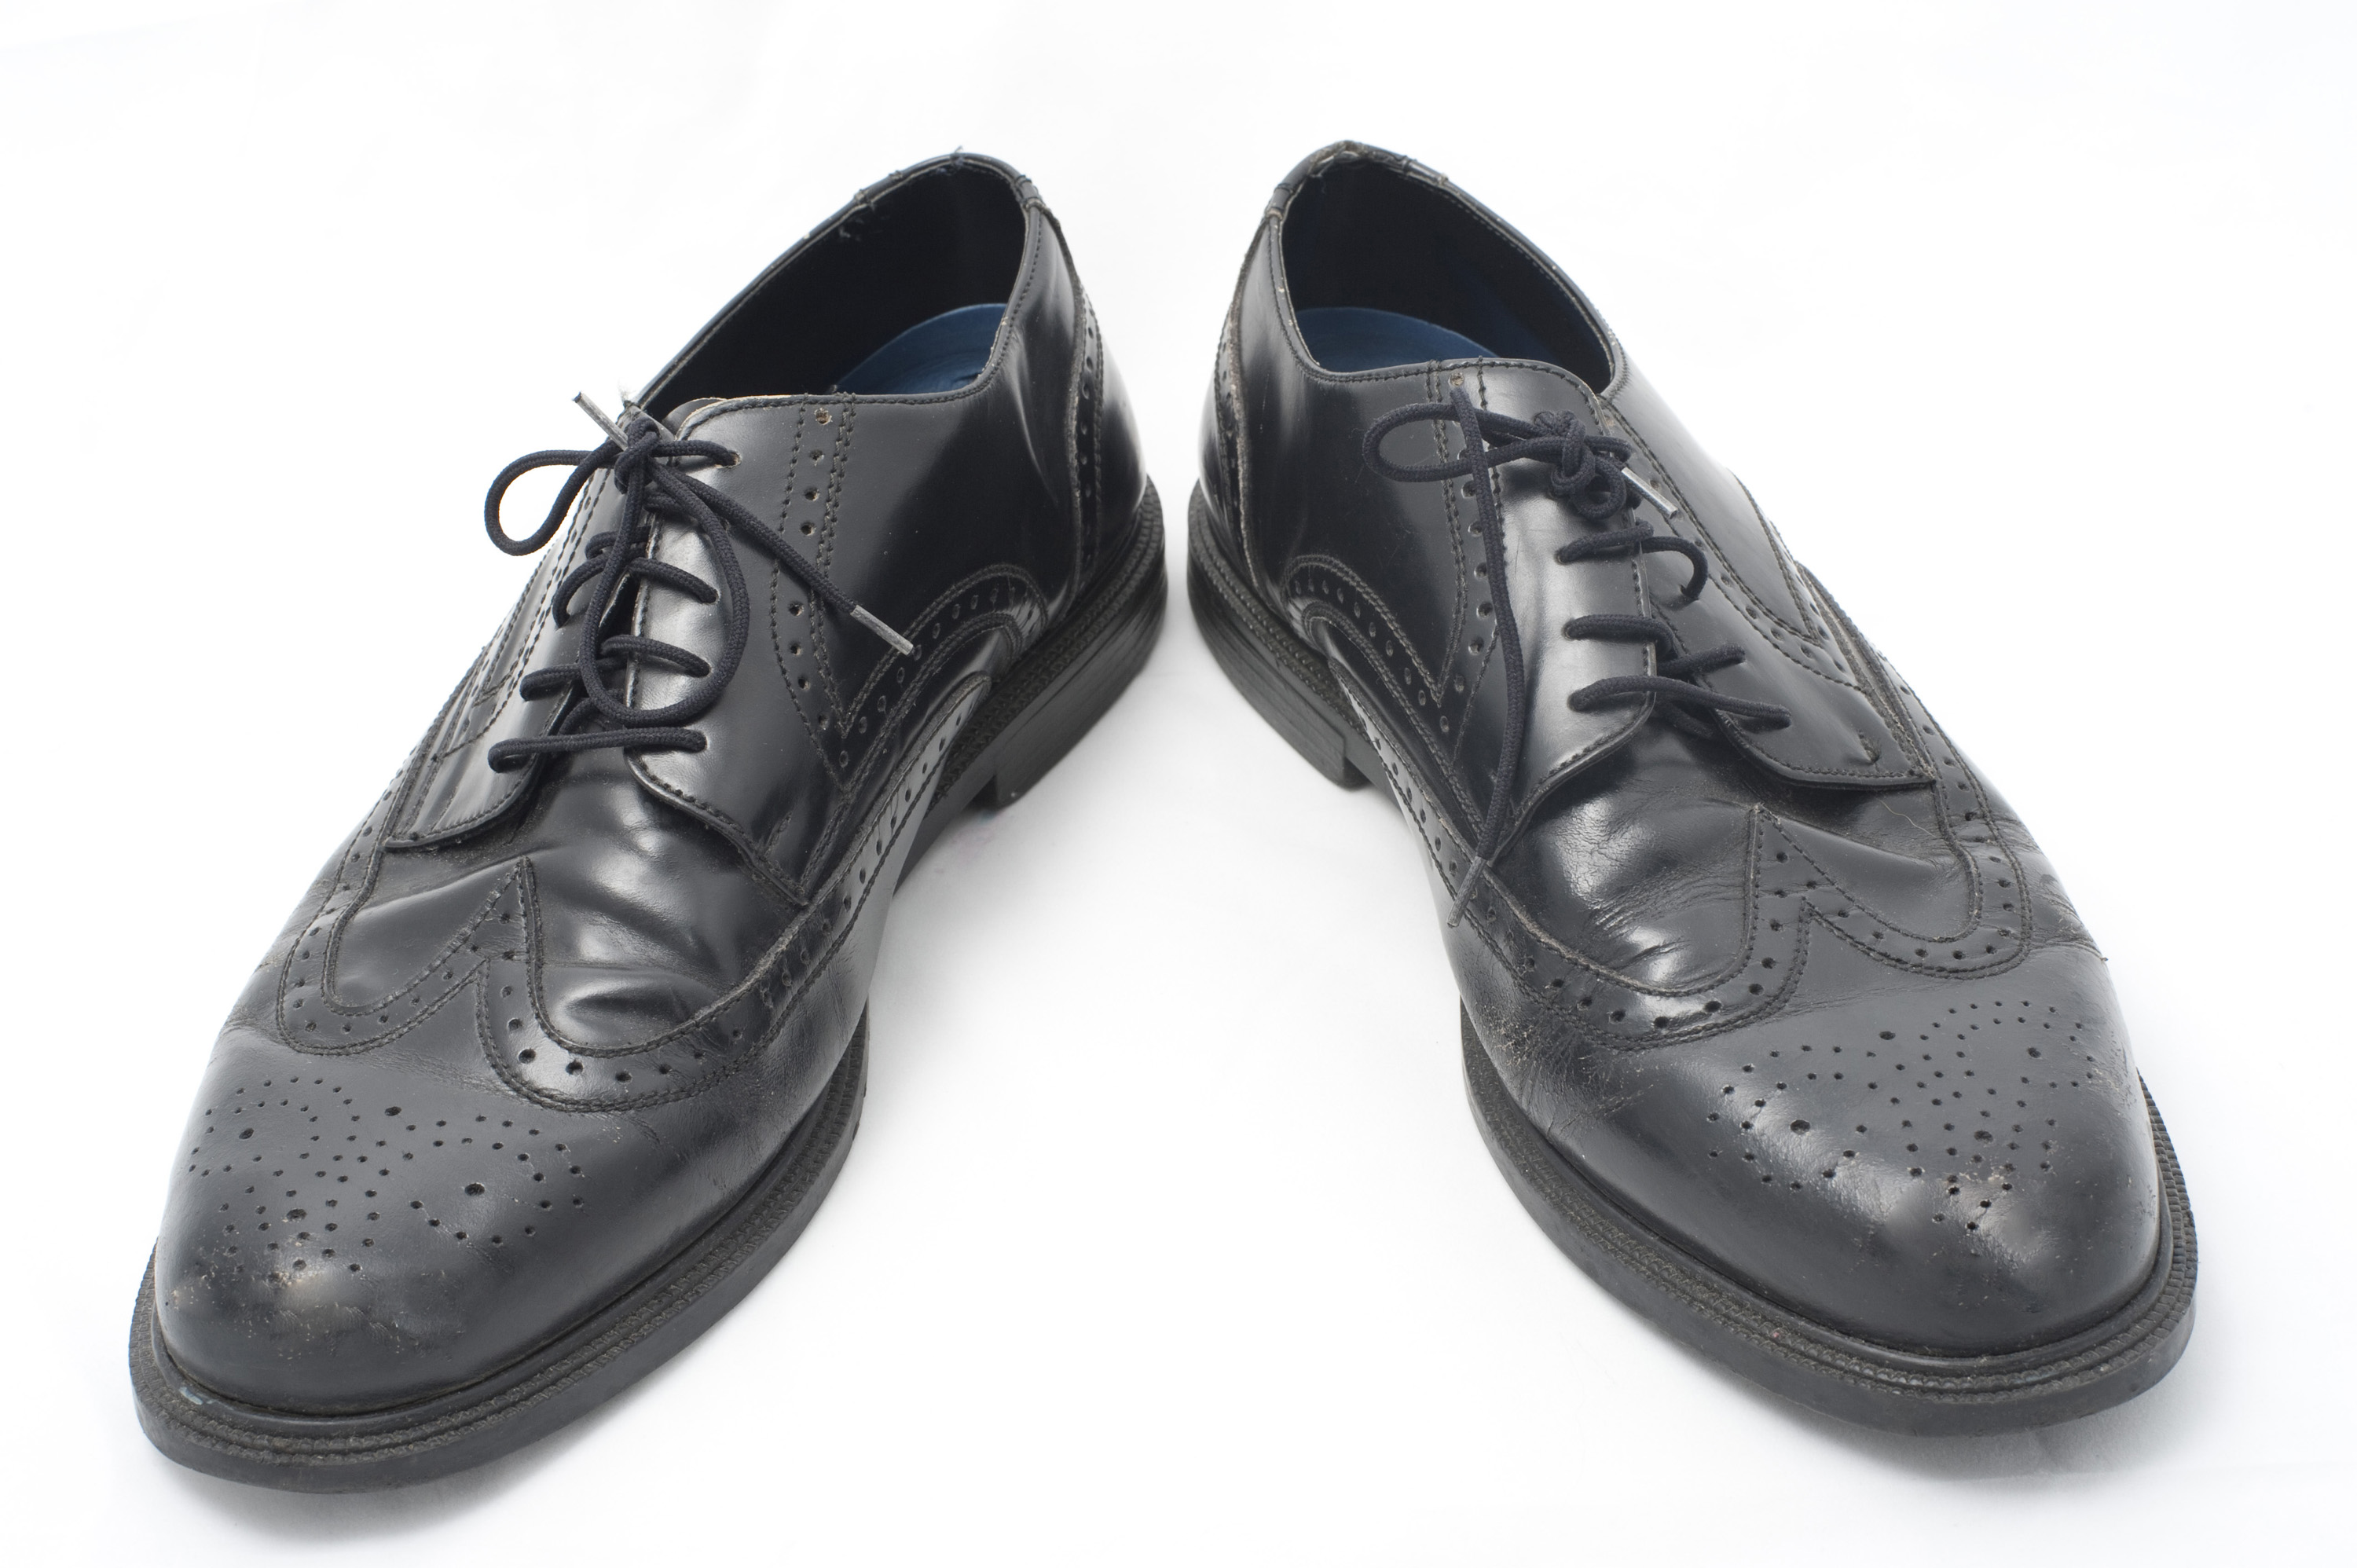 eee4174c80ce Free image of Leather dress shoes for men